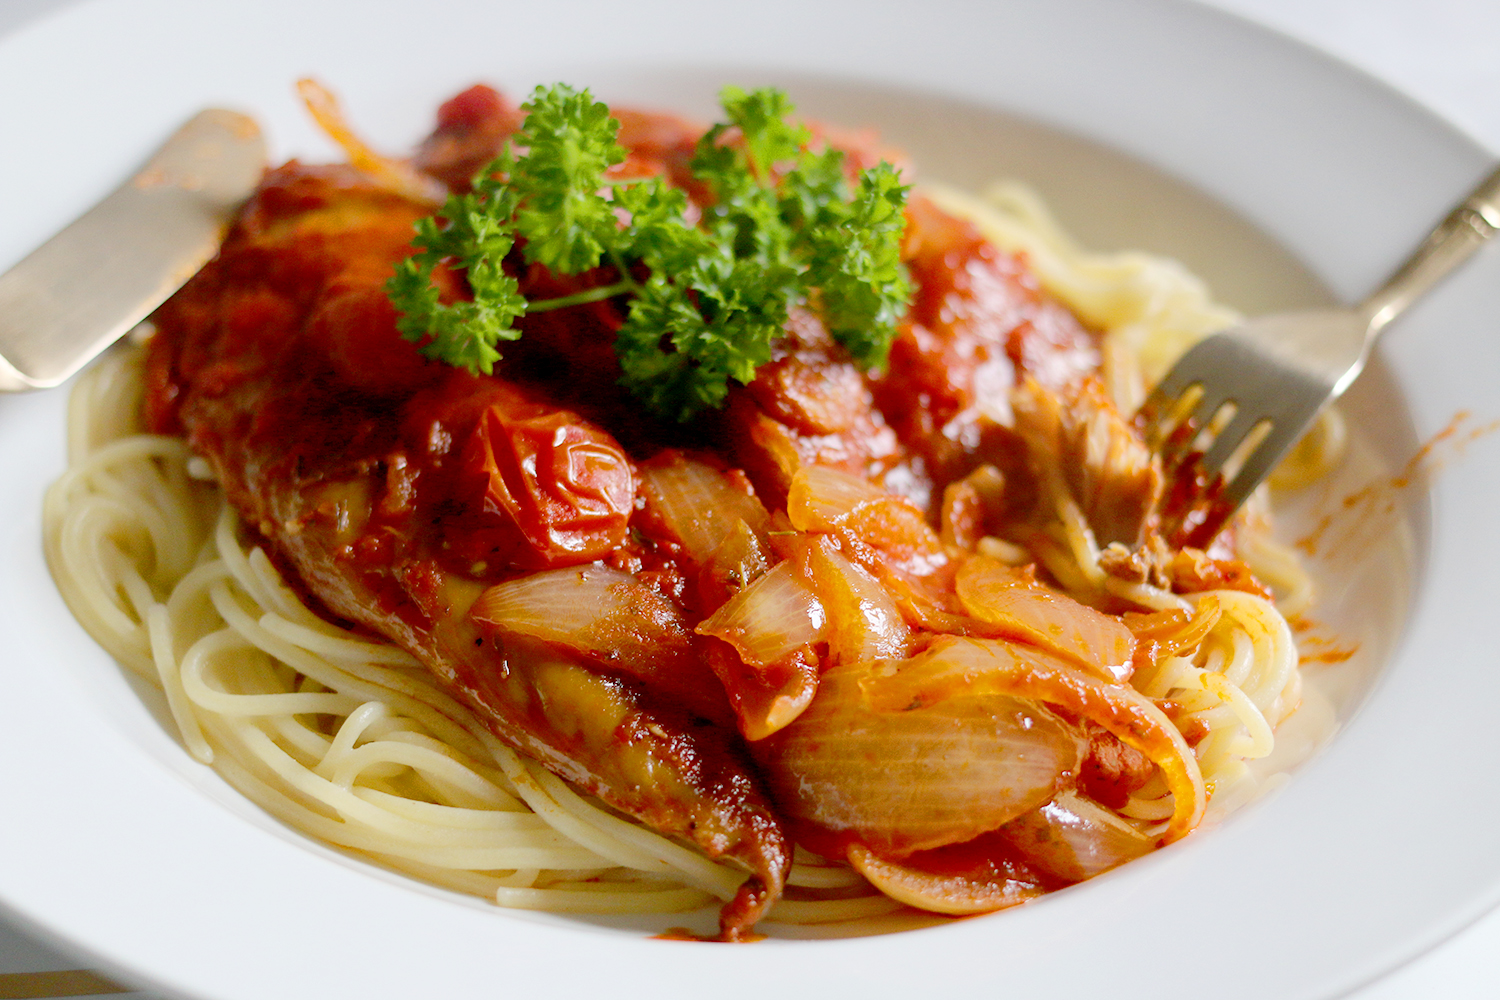 Dig in and give my delcious gluten-free smoked mackerel and chorizo pasta a go!